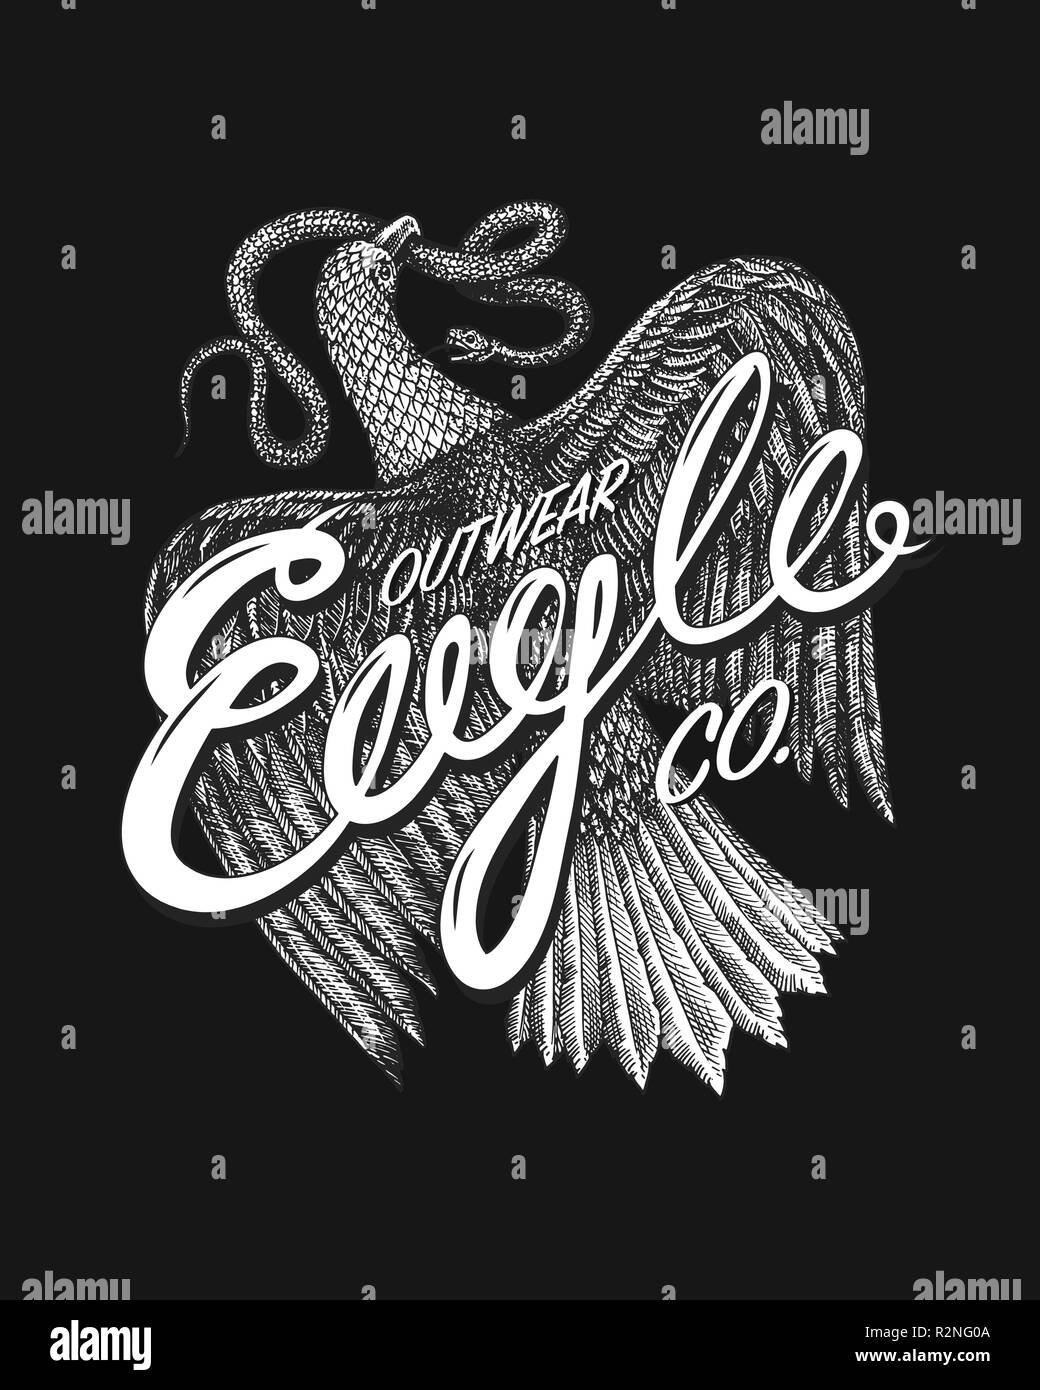 Aquila Symbol of Freedom. Wild Eagle, predatory bird. Vector hand drawn. Vintage template for t-shirt logo. Grunge label print. Engraved monochrome sketch. - Stock Image